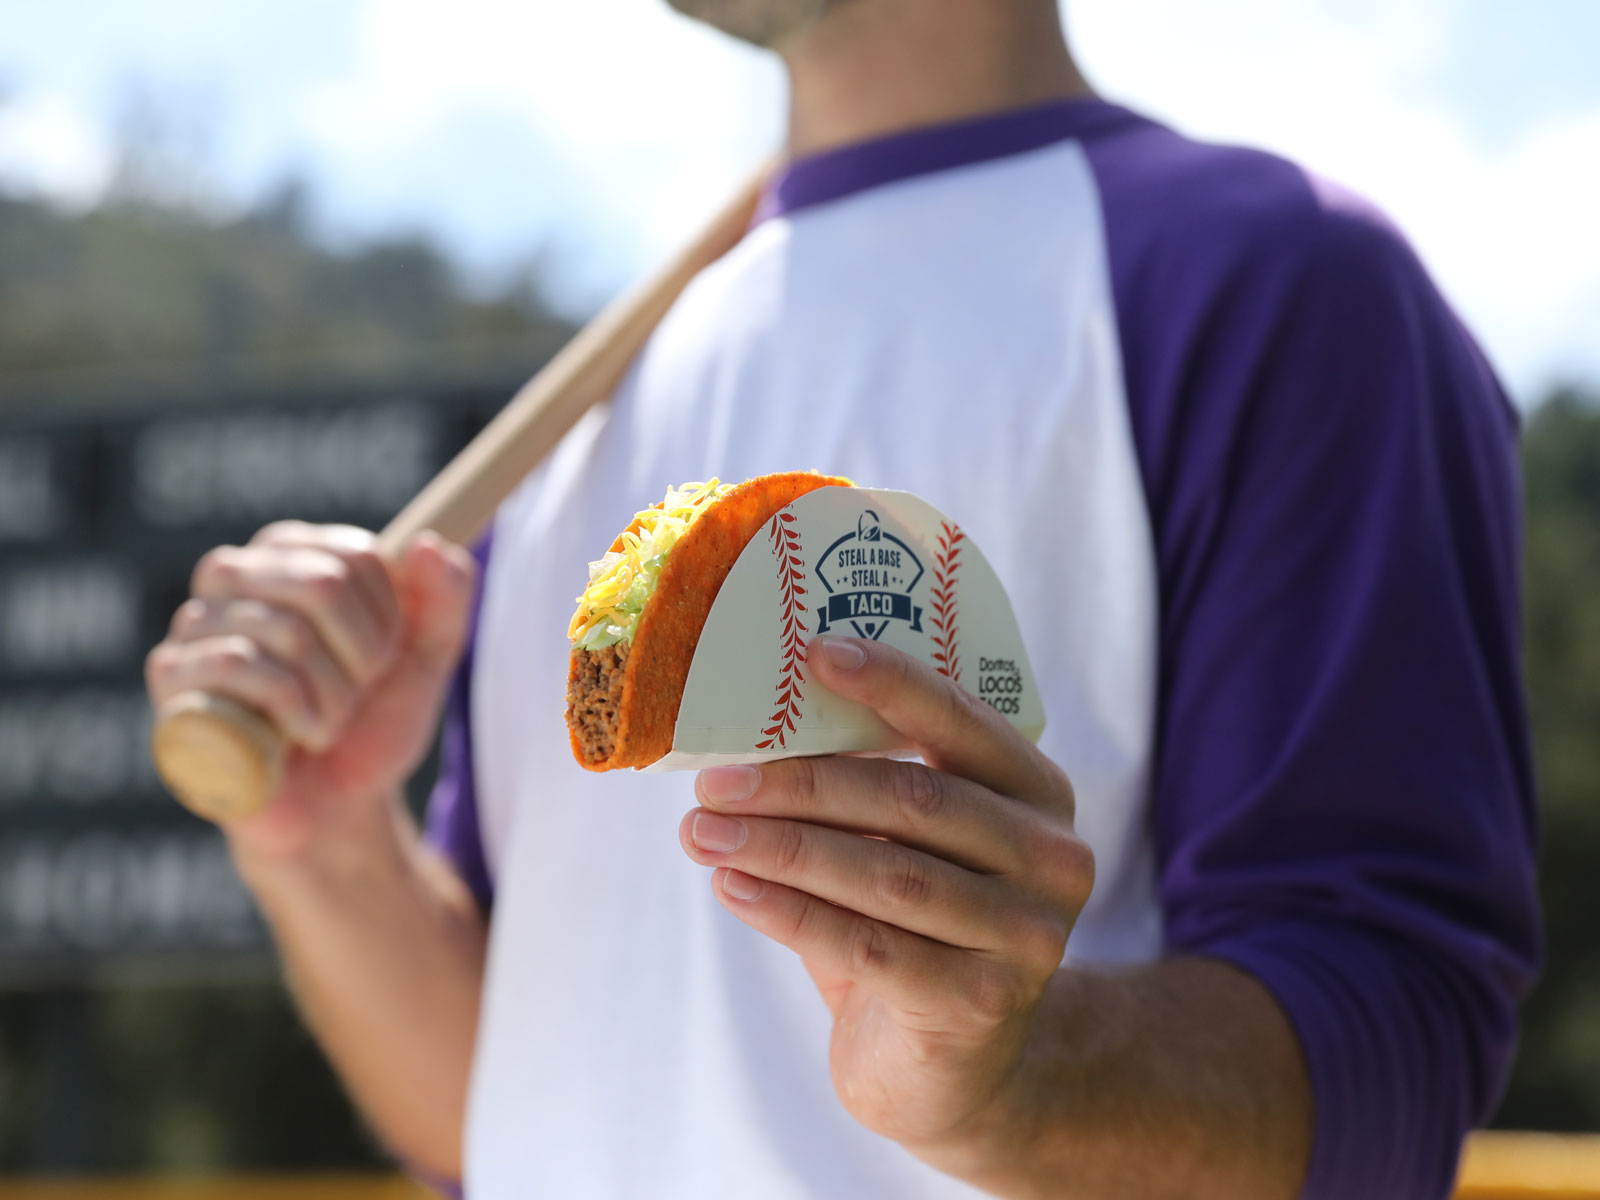 Taco Bell Freebie Deal: How to Get a Free Doritos Locos Taco